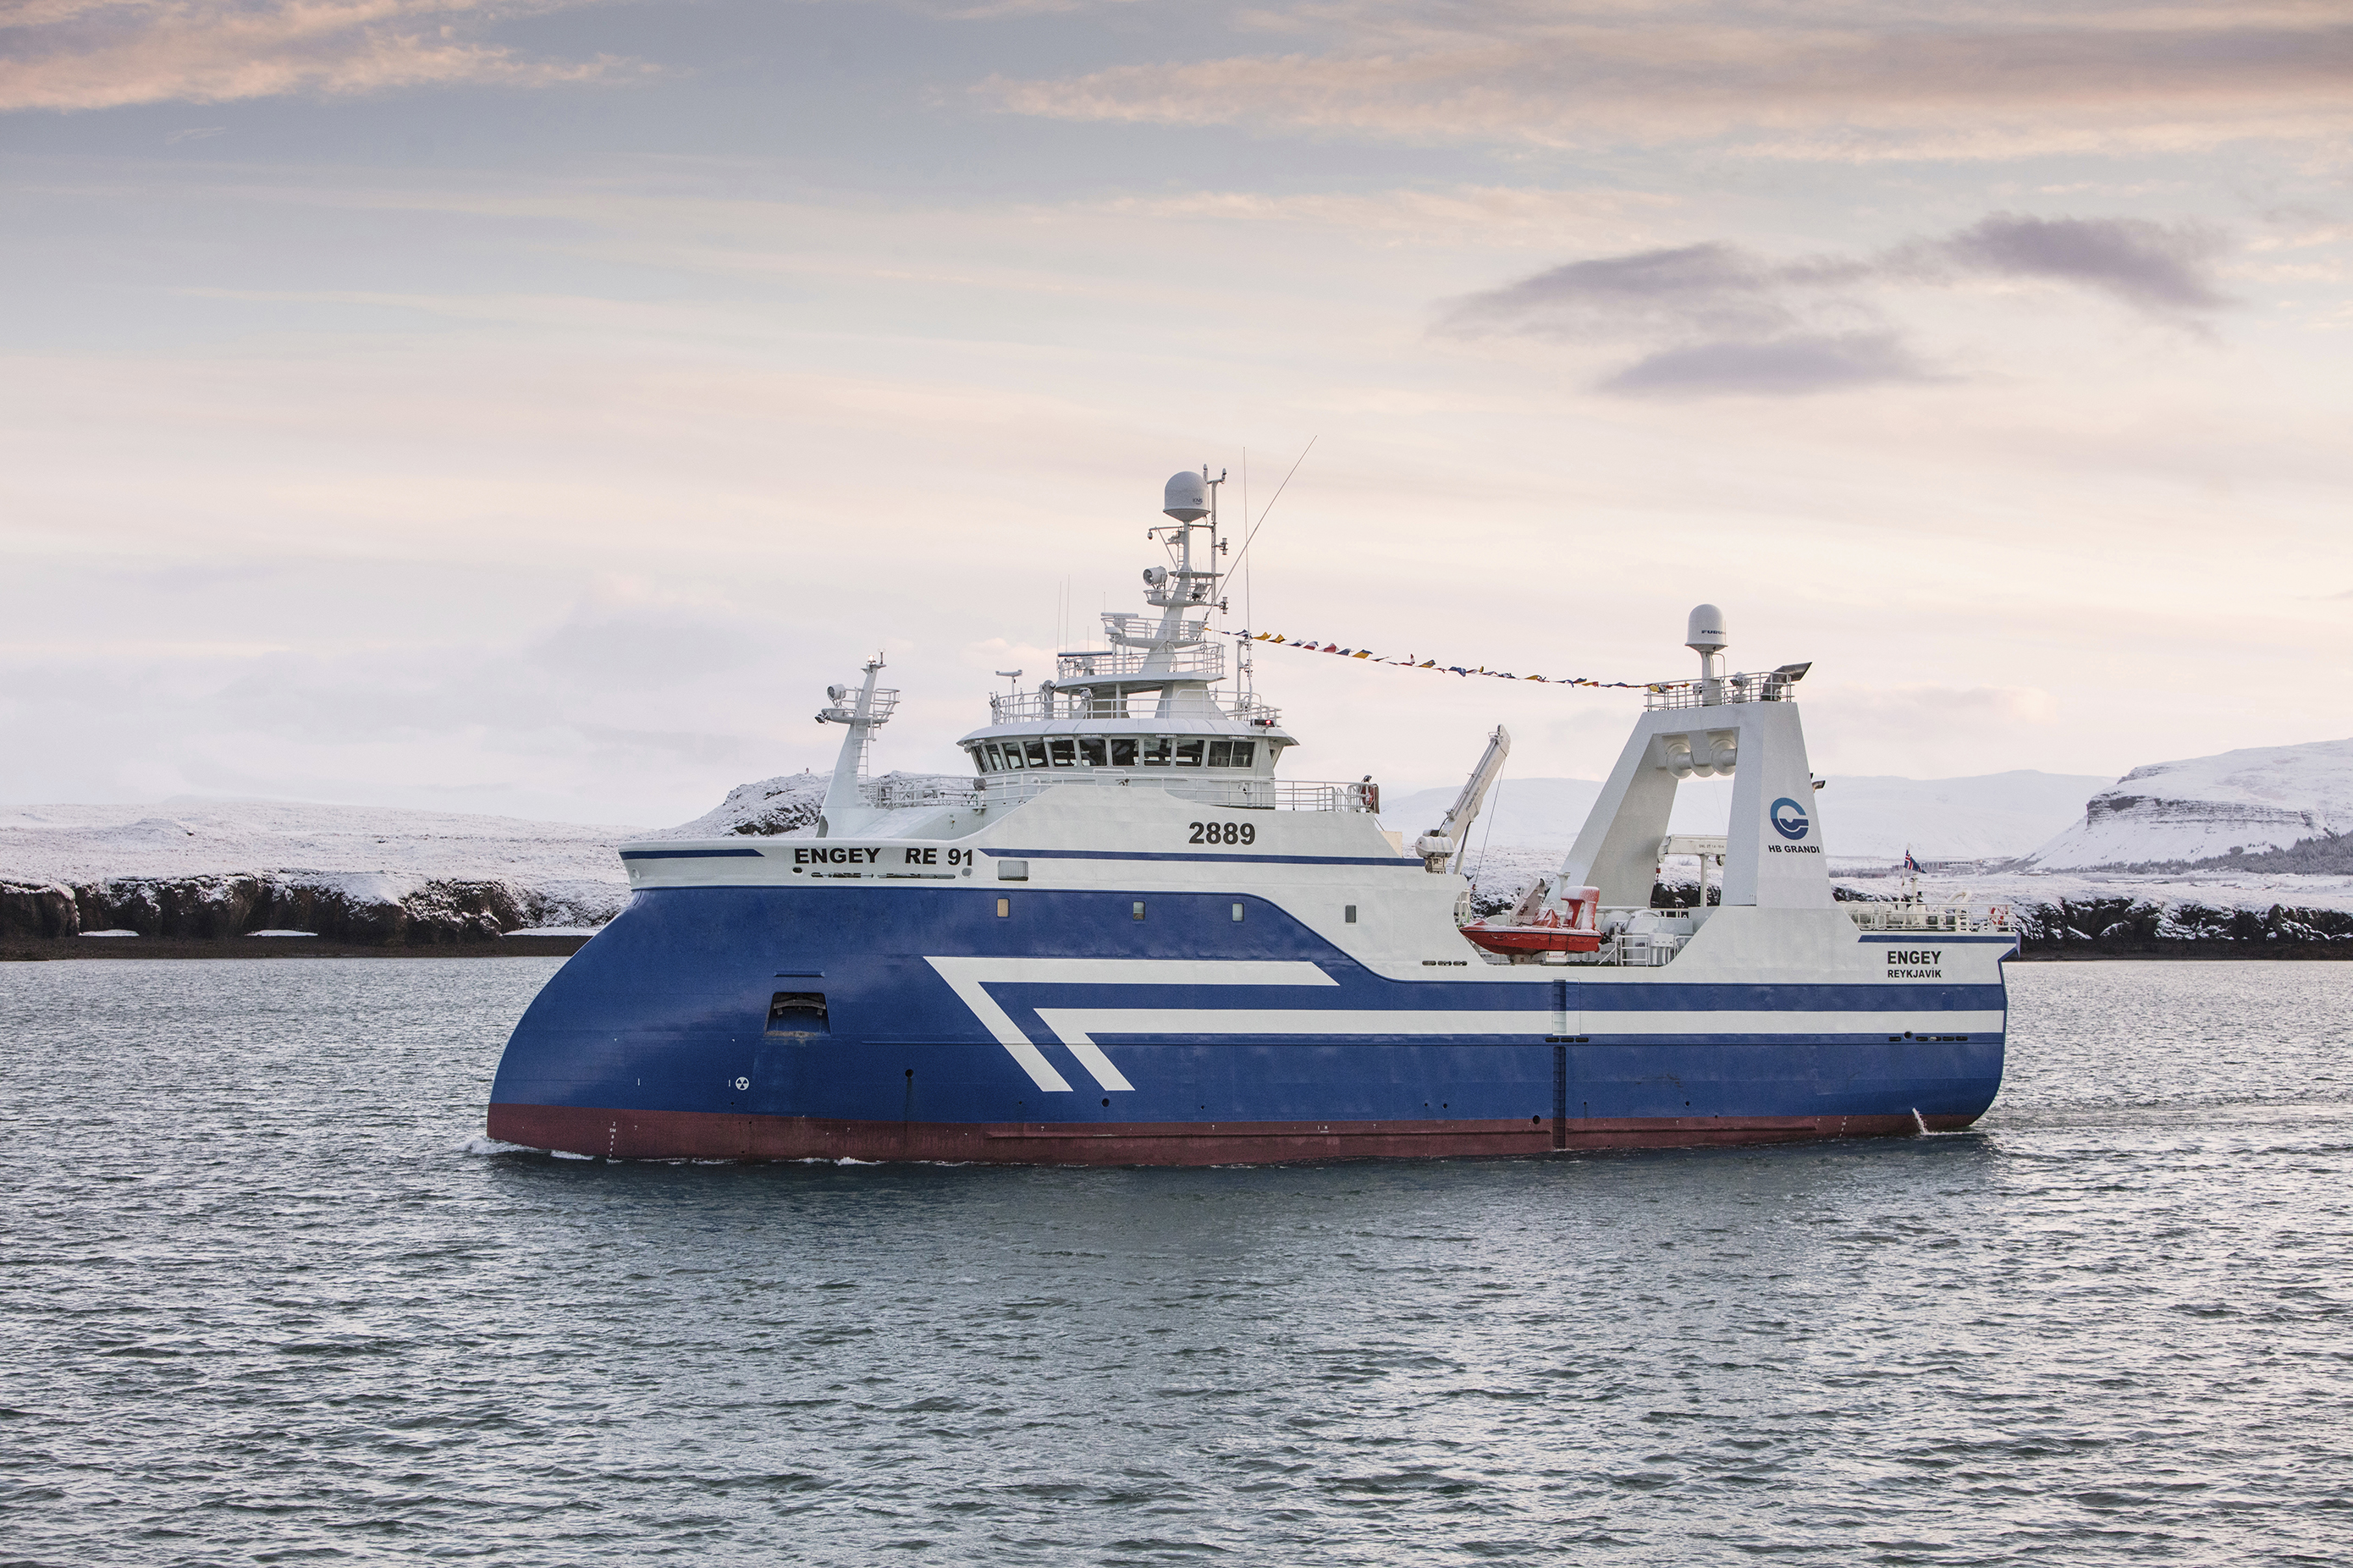 Engey welcomed in Reykjavík harbor today